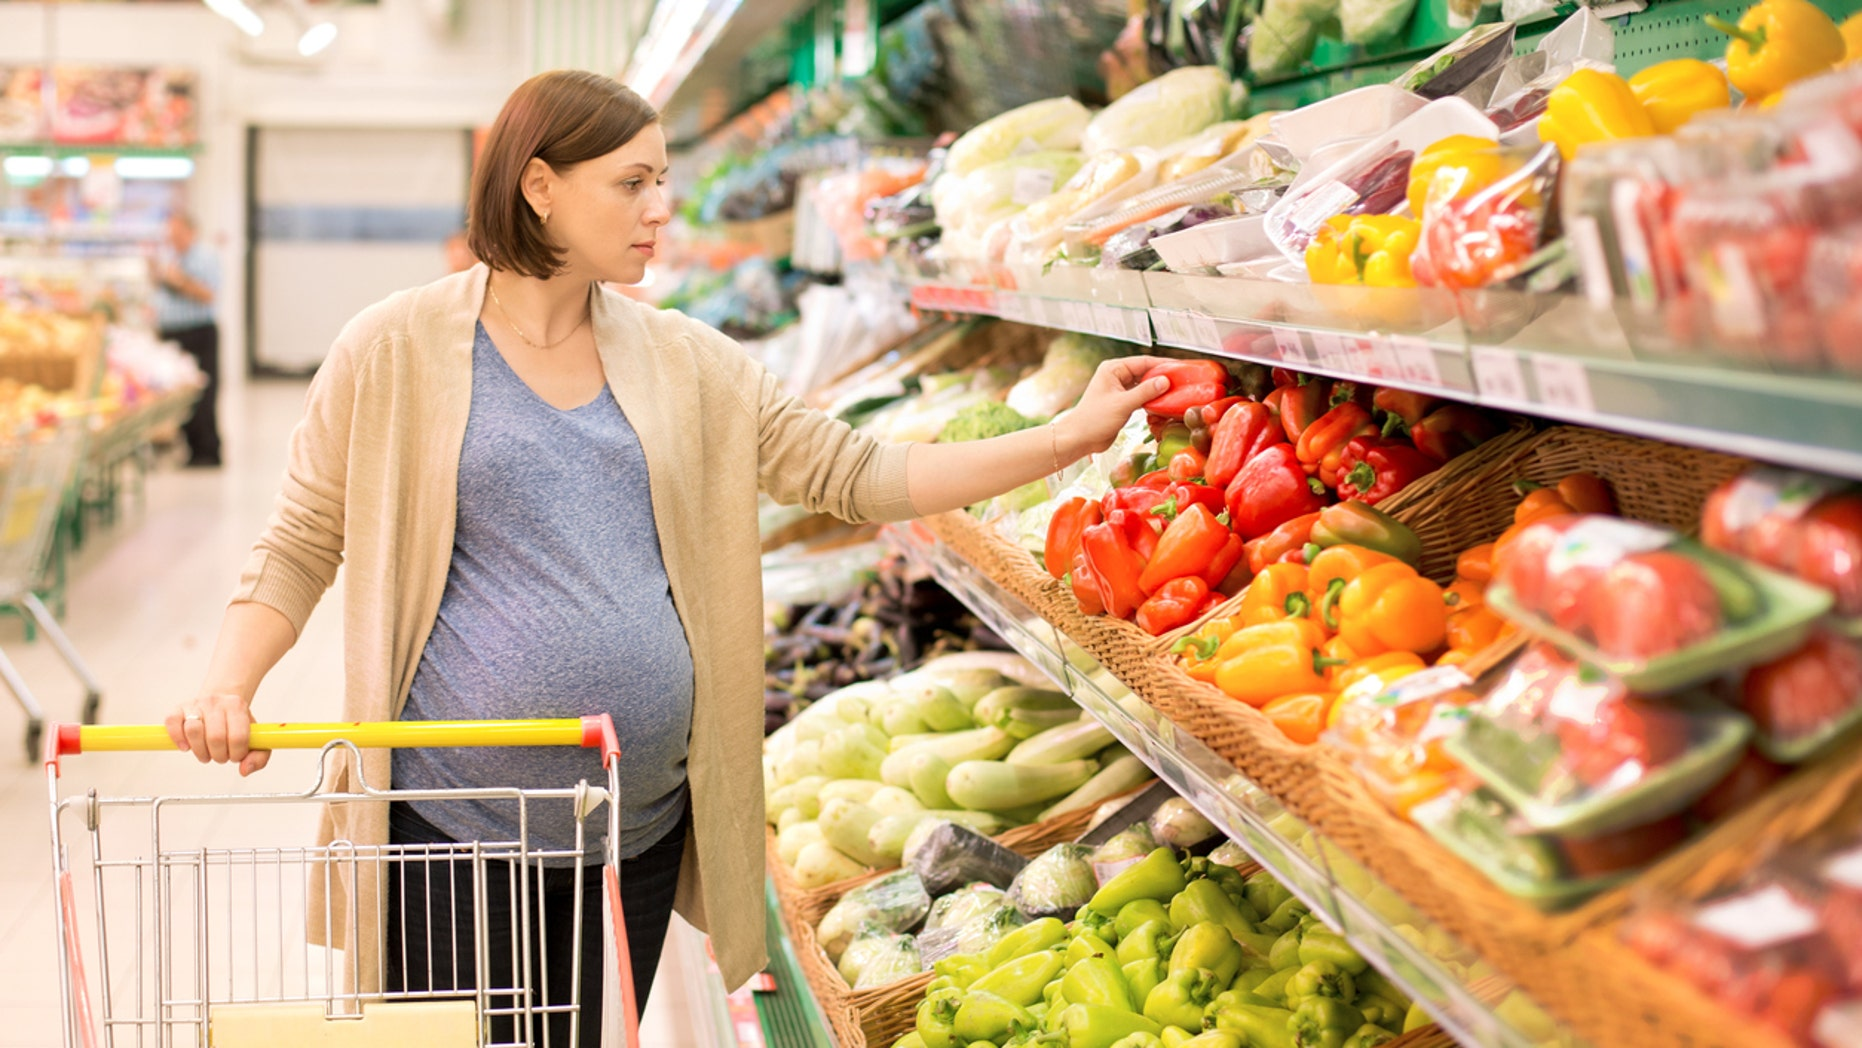 A vegetarian diet can be a great starting point for pregnancy as long as certain nutrient requirements are met, and sometimes that means careful planning.